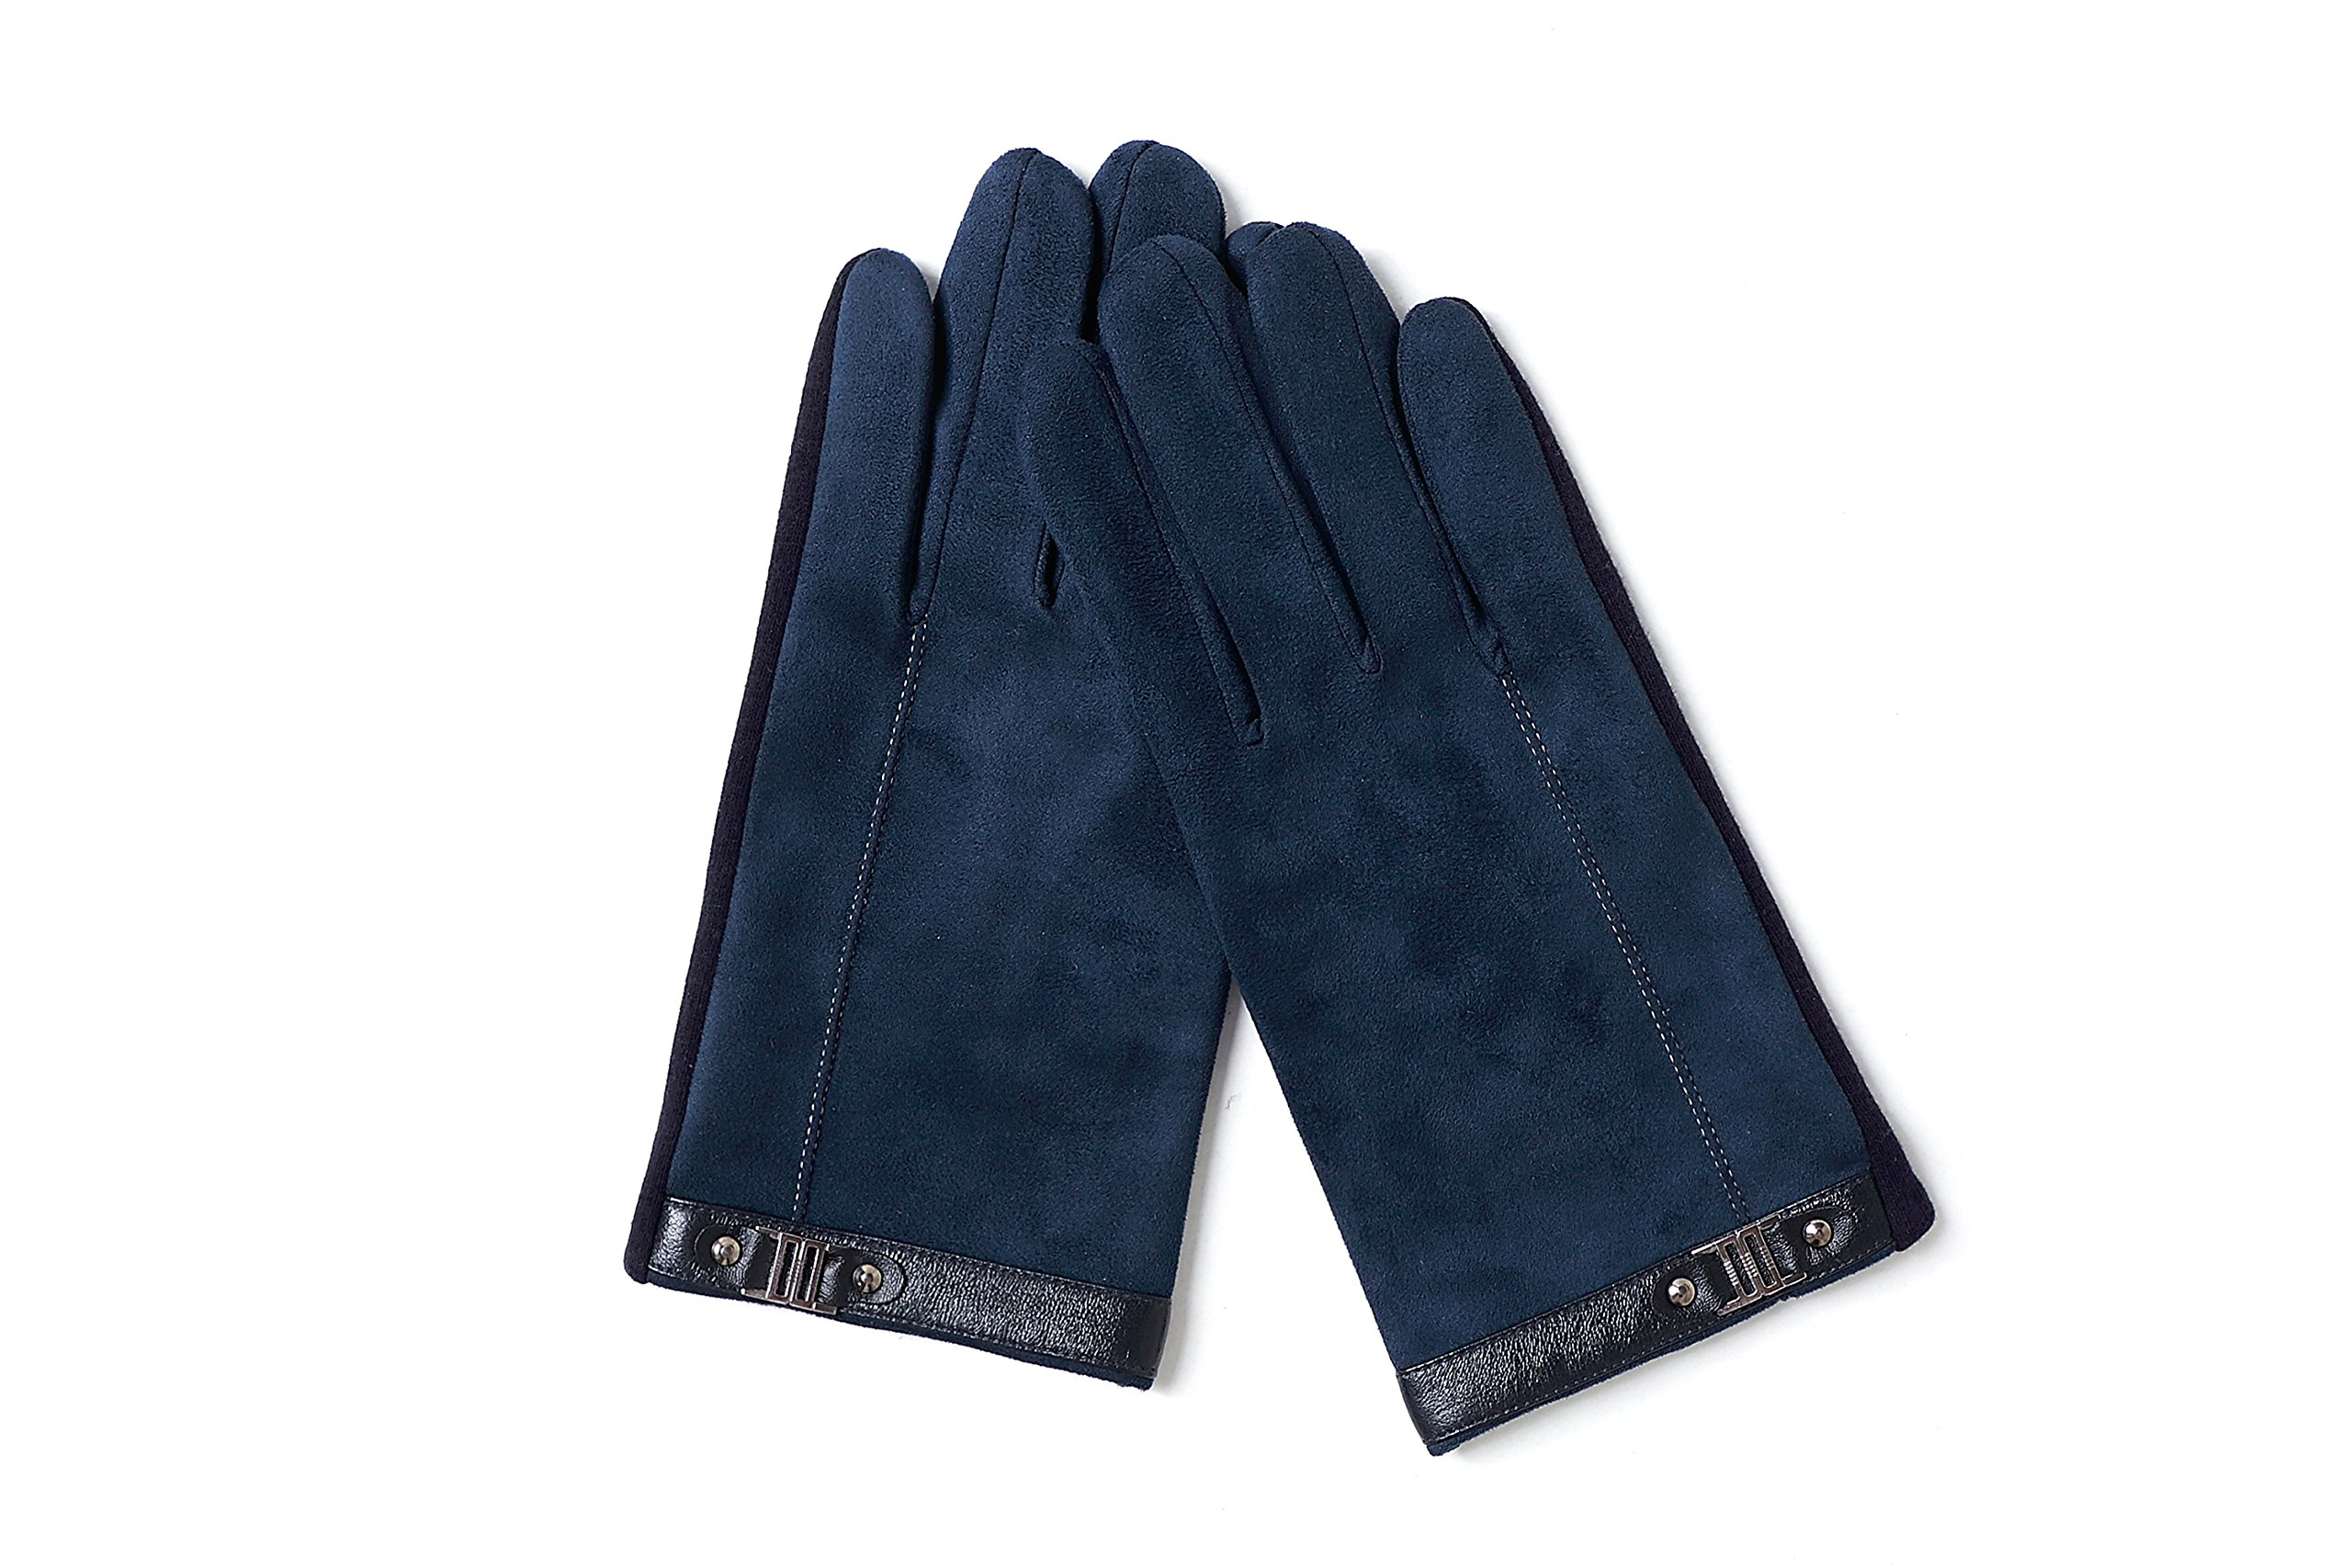 YISEVEN Men's Suede Chamois Leather Gloves Touchscreen Flat Design Plain Lined Luxury Soft Hand Warm Fur Heated Lining for Winter Spring Stylish Dress Work Xmas Gift and Motorcycle Driving, Blue M by YISEVEN (Image #5)